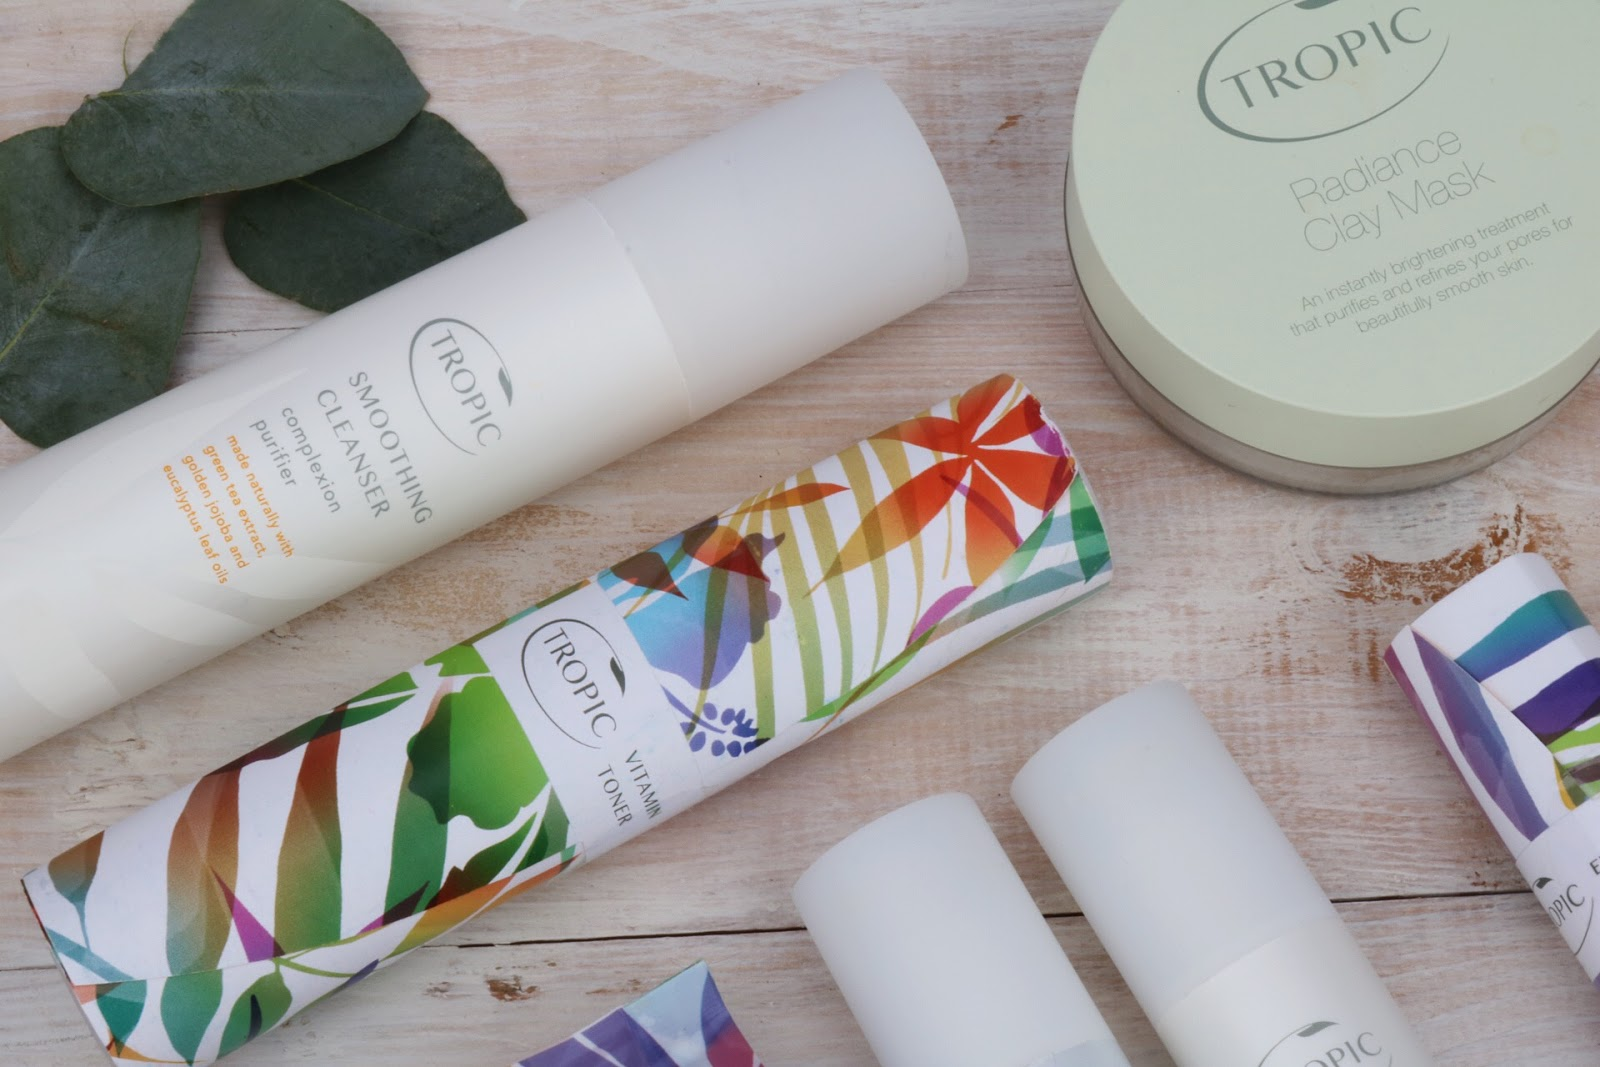 Tropic Products - Smoothing Cleanser, Vitamin Toner & Radiance Clay